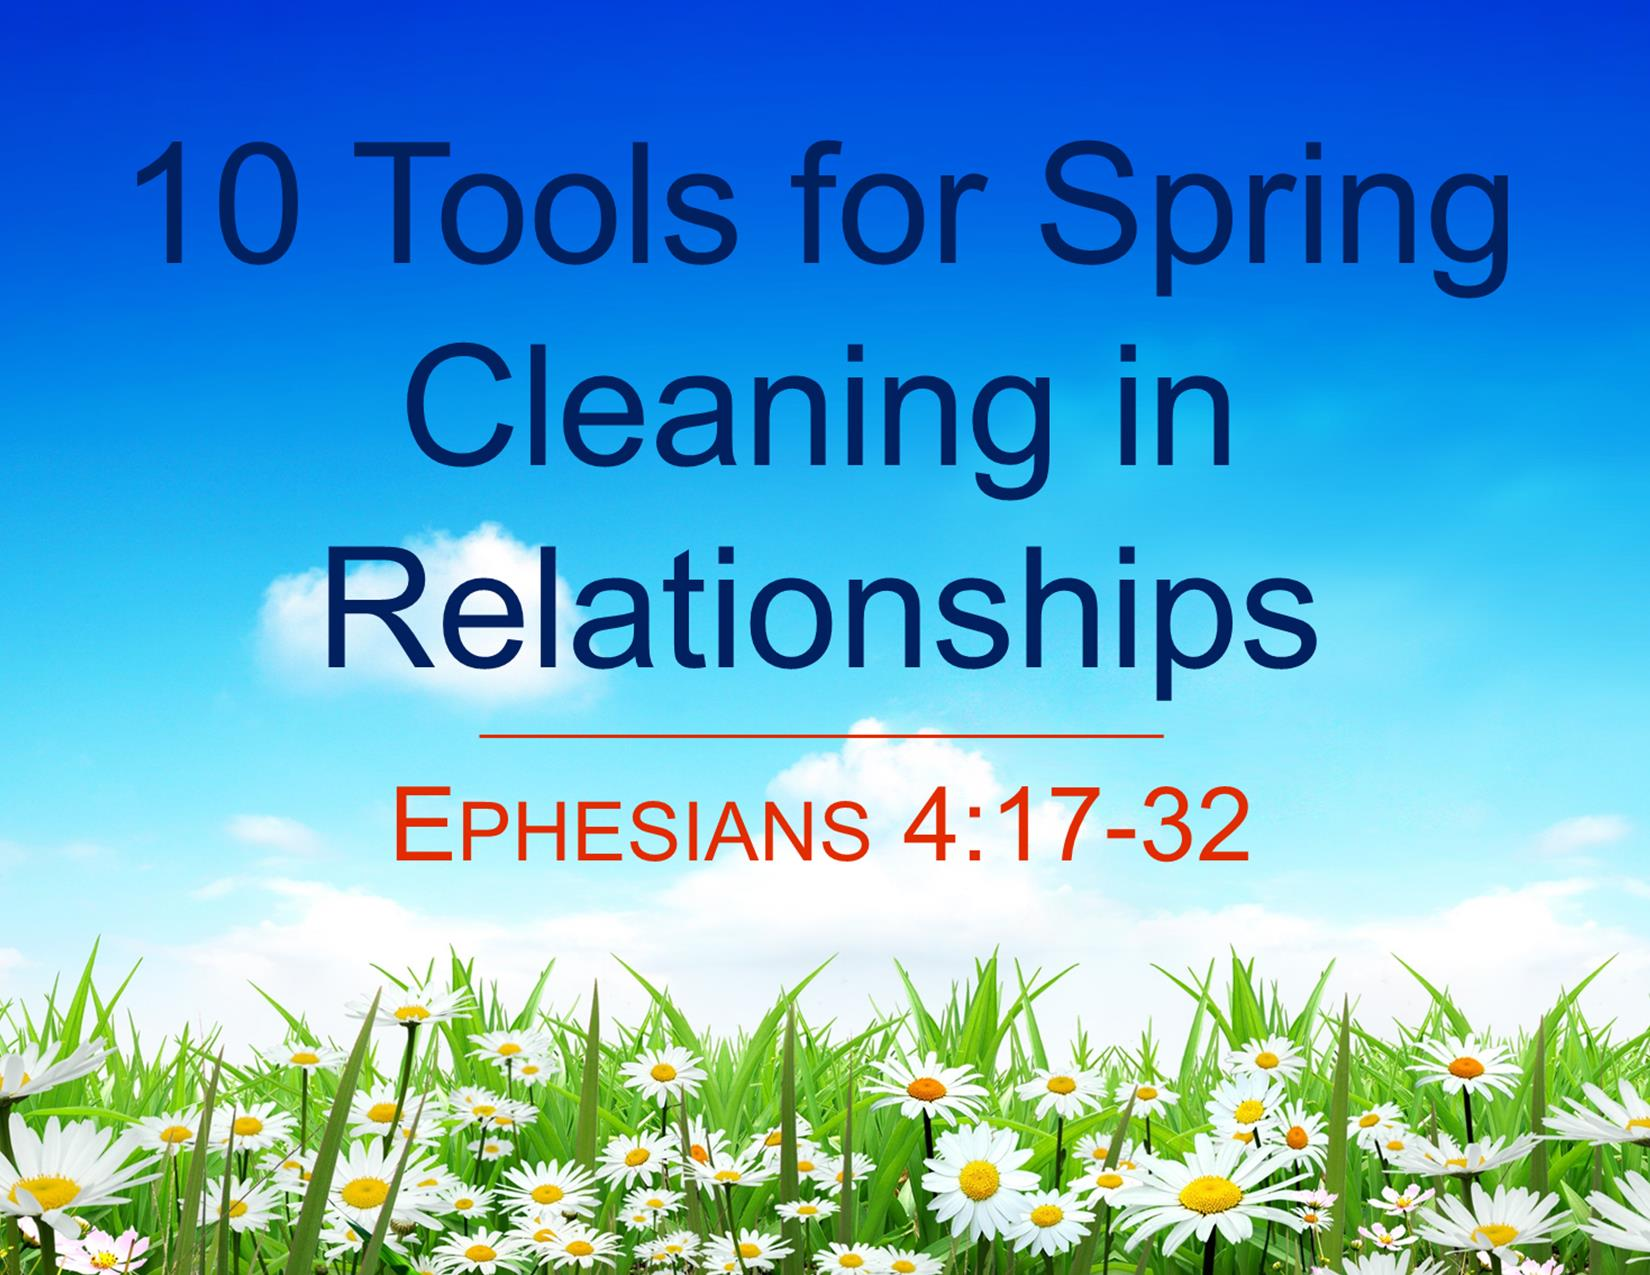 April 10, 2016 ~ 10 Tools for Spring Cleaning in Relationships (Ephesians 4:17-32) ~ Pastor Jason Pilchard